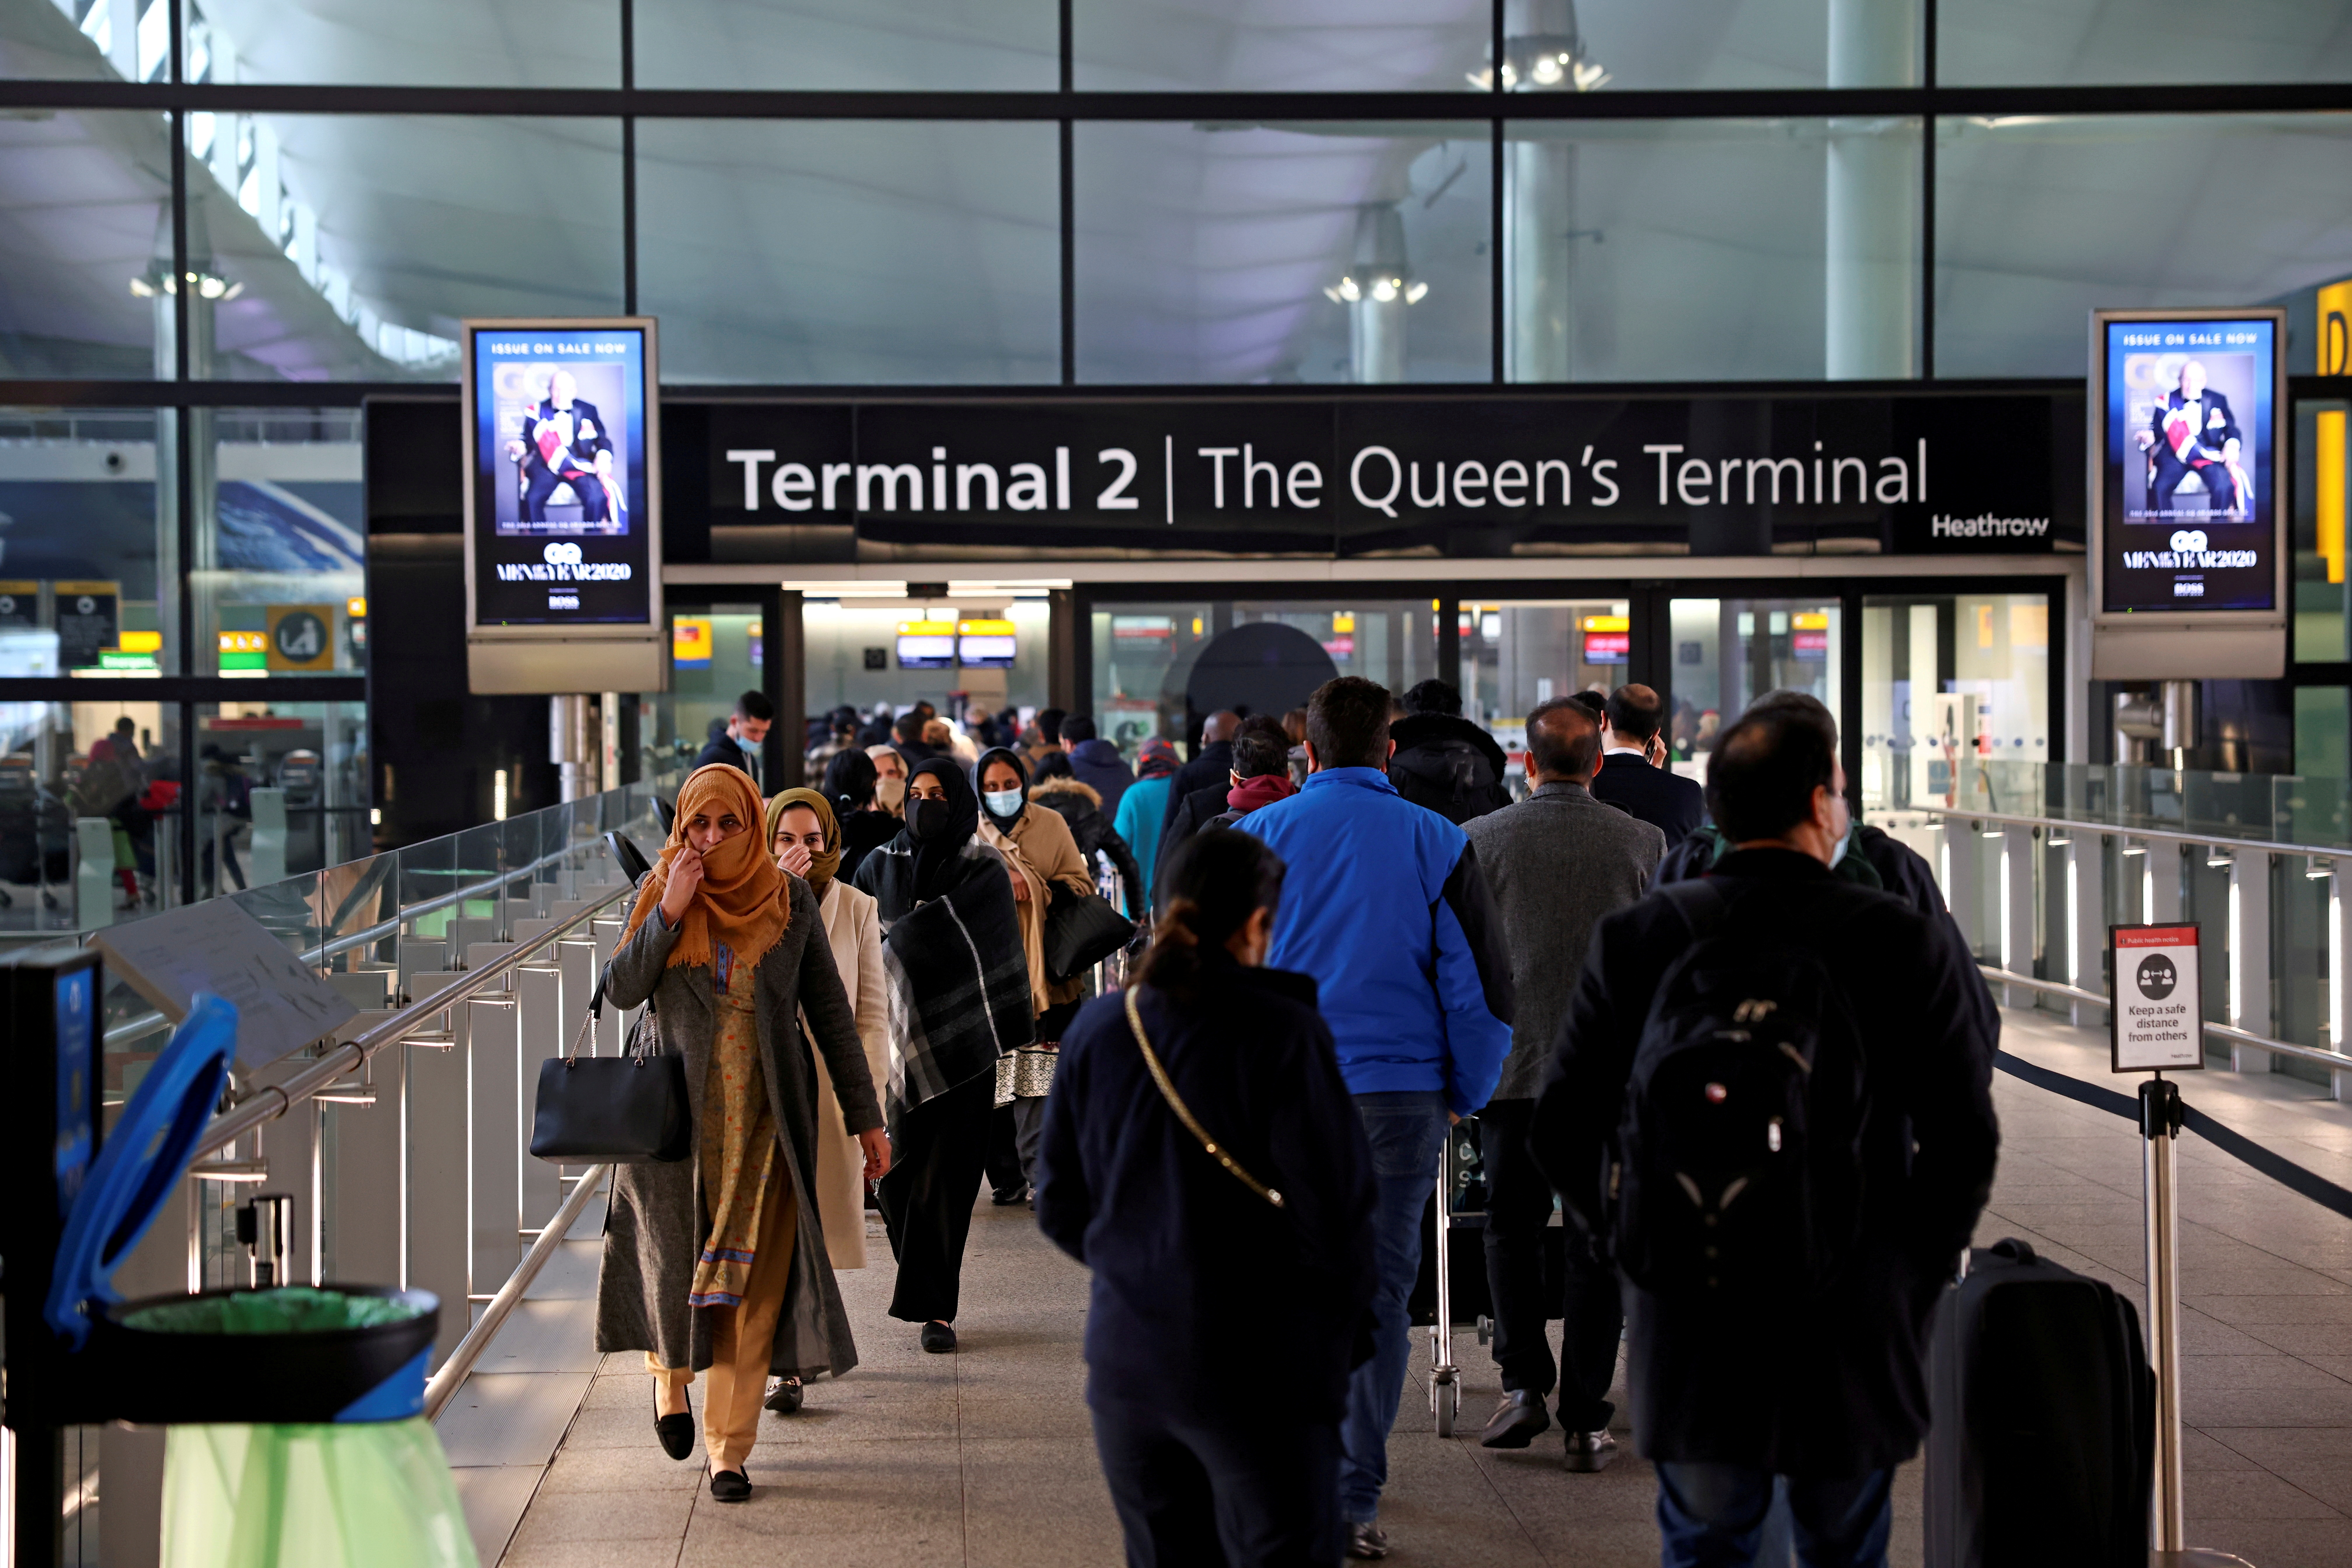 People queue to enter terminal 2, as tighter rules for international travellers start, at Heathrow Airport, amid the spread of the coronavirus disease (COVID-19) pandemic, London, Britain, January 18, 2021. REUTERS/Henry Nicholls